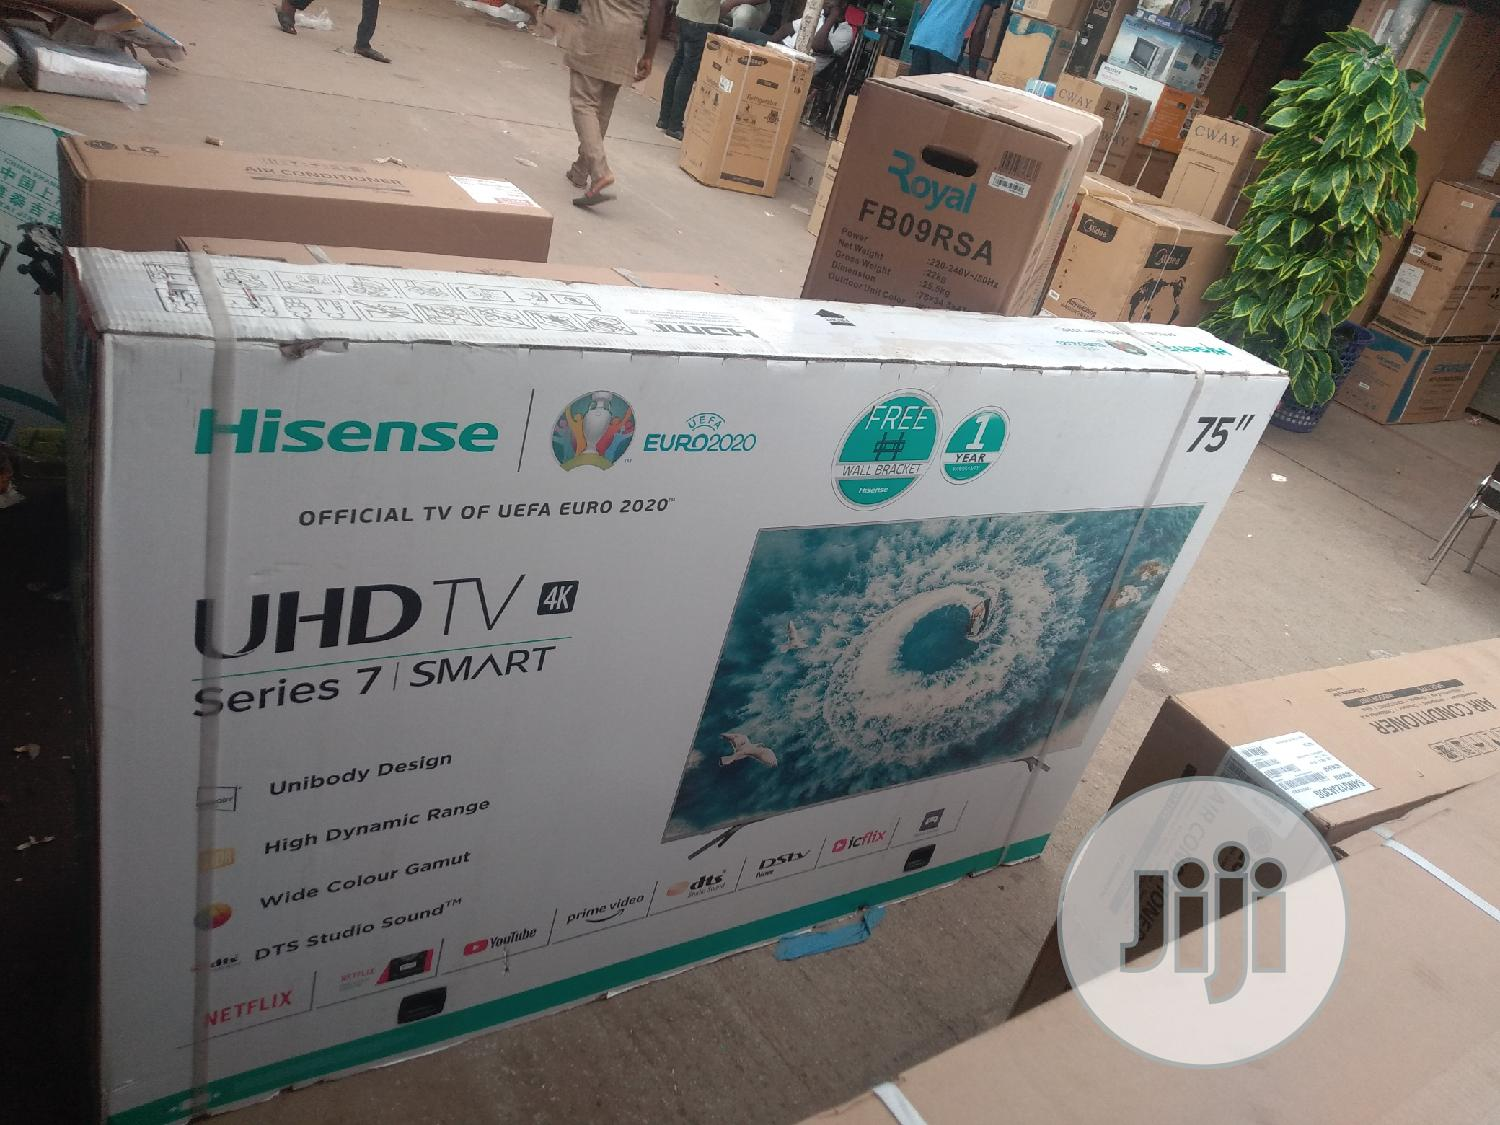 Hisense Television 75inches Smart 4k Uhd | TV & DVD Equipment for sale in Wuse, Abuja (FCT) State, Nigeria